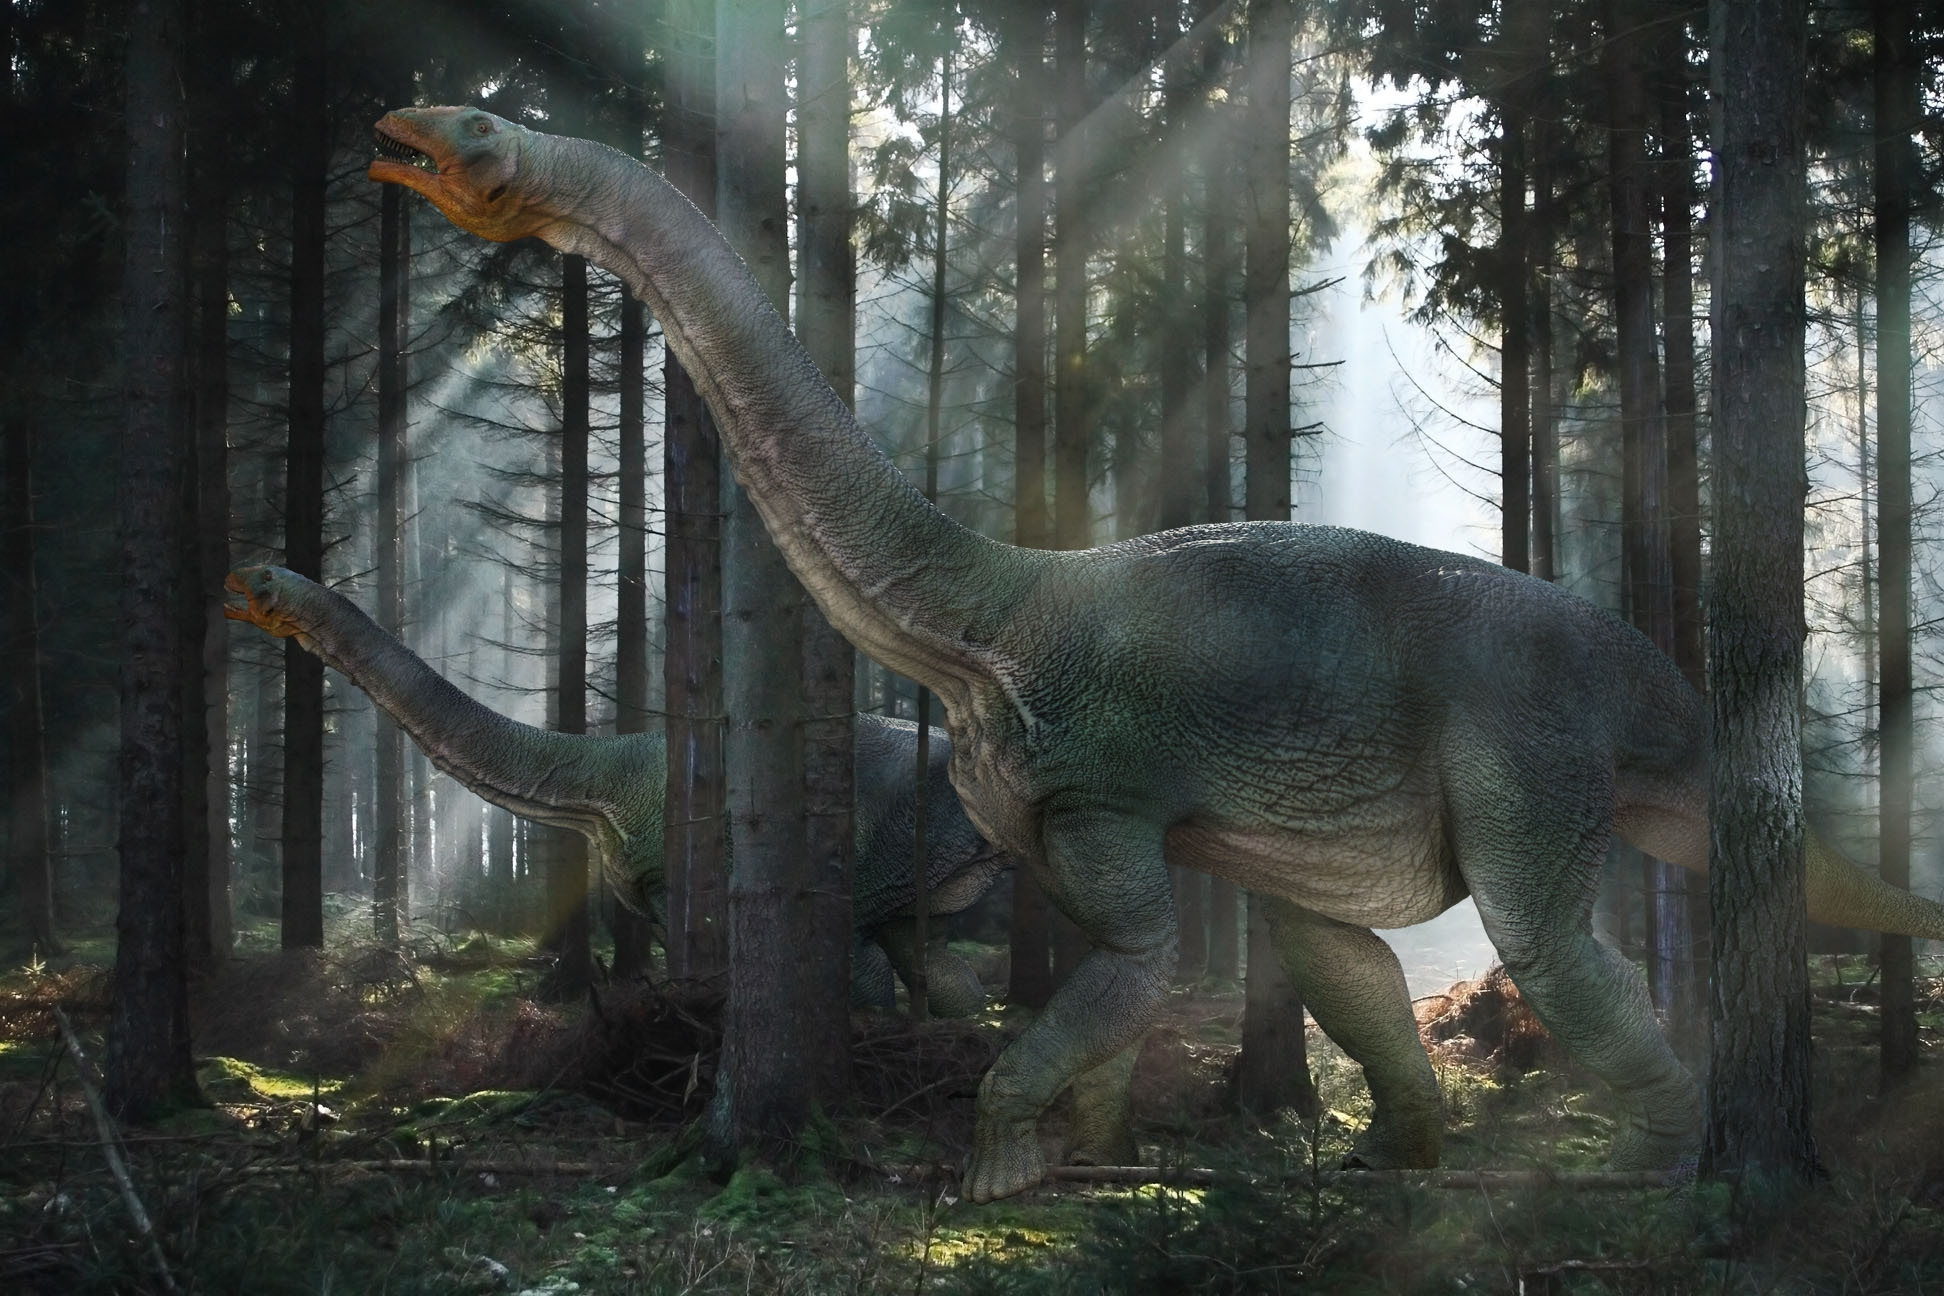 69792 download wallpaper Animals, Dinosaur, Mesozoic Era, Stroll, Forest screensavers and pictures for free